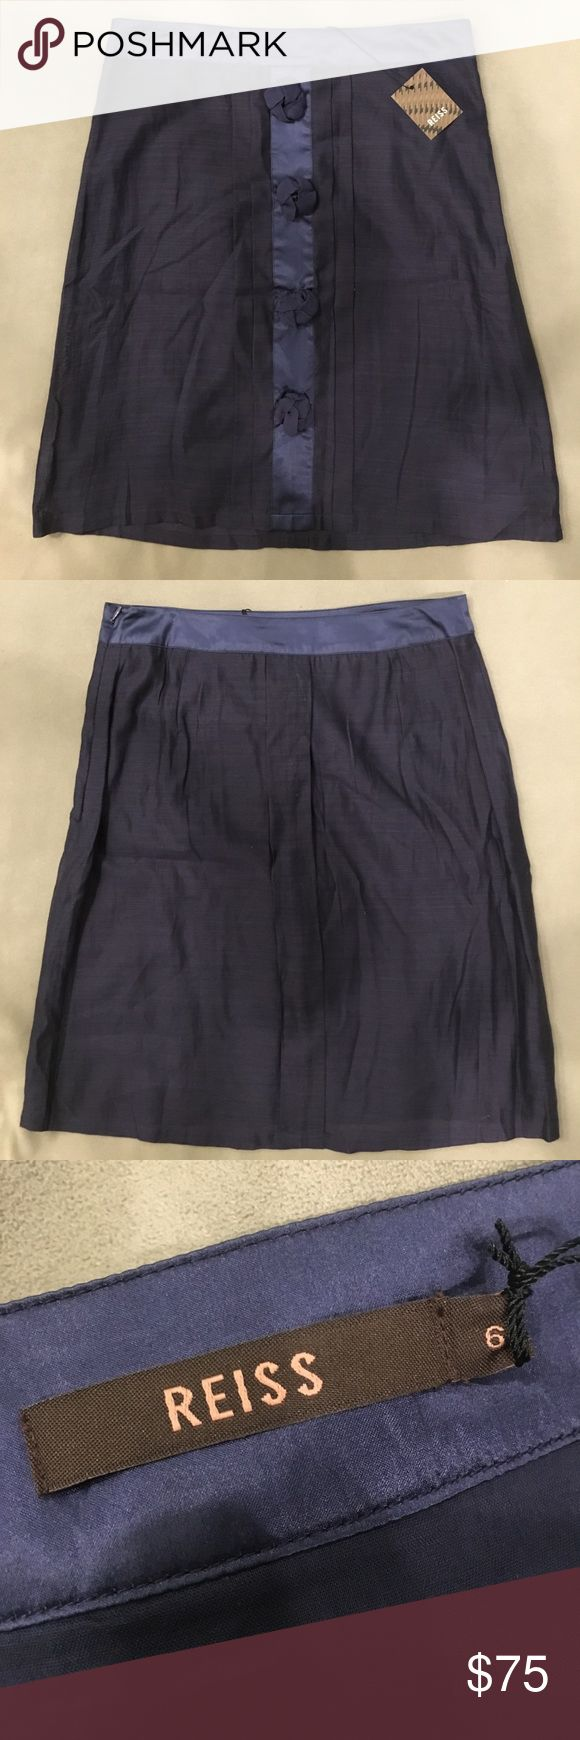 💙 NWT Reiss skirt 💙 New With Tags! | Size 6 | Cotton and Silk Reiss Skirts